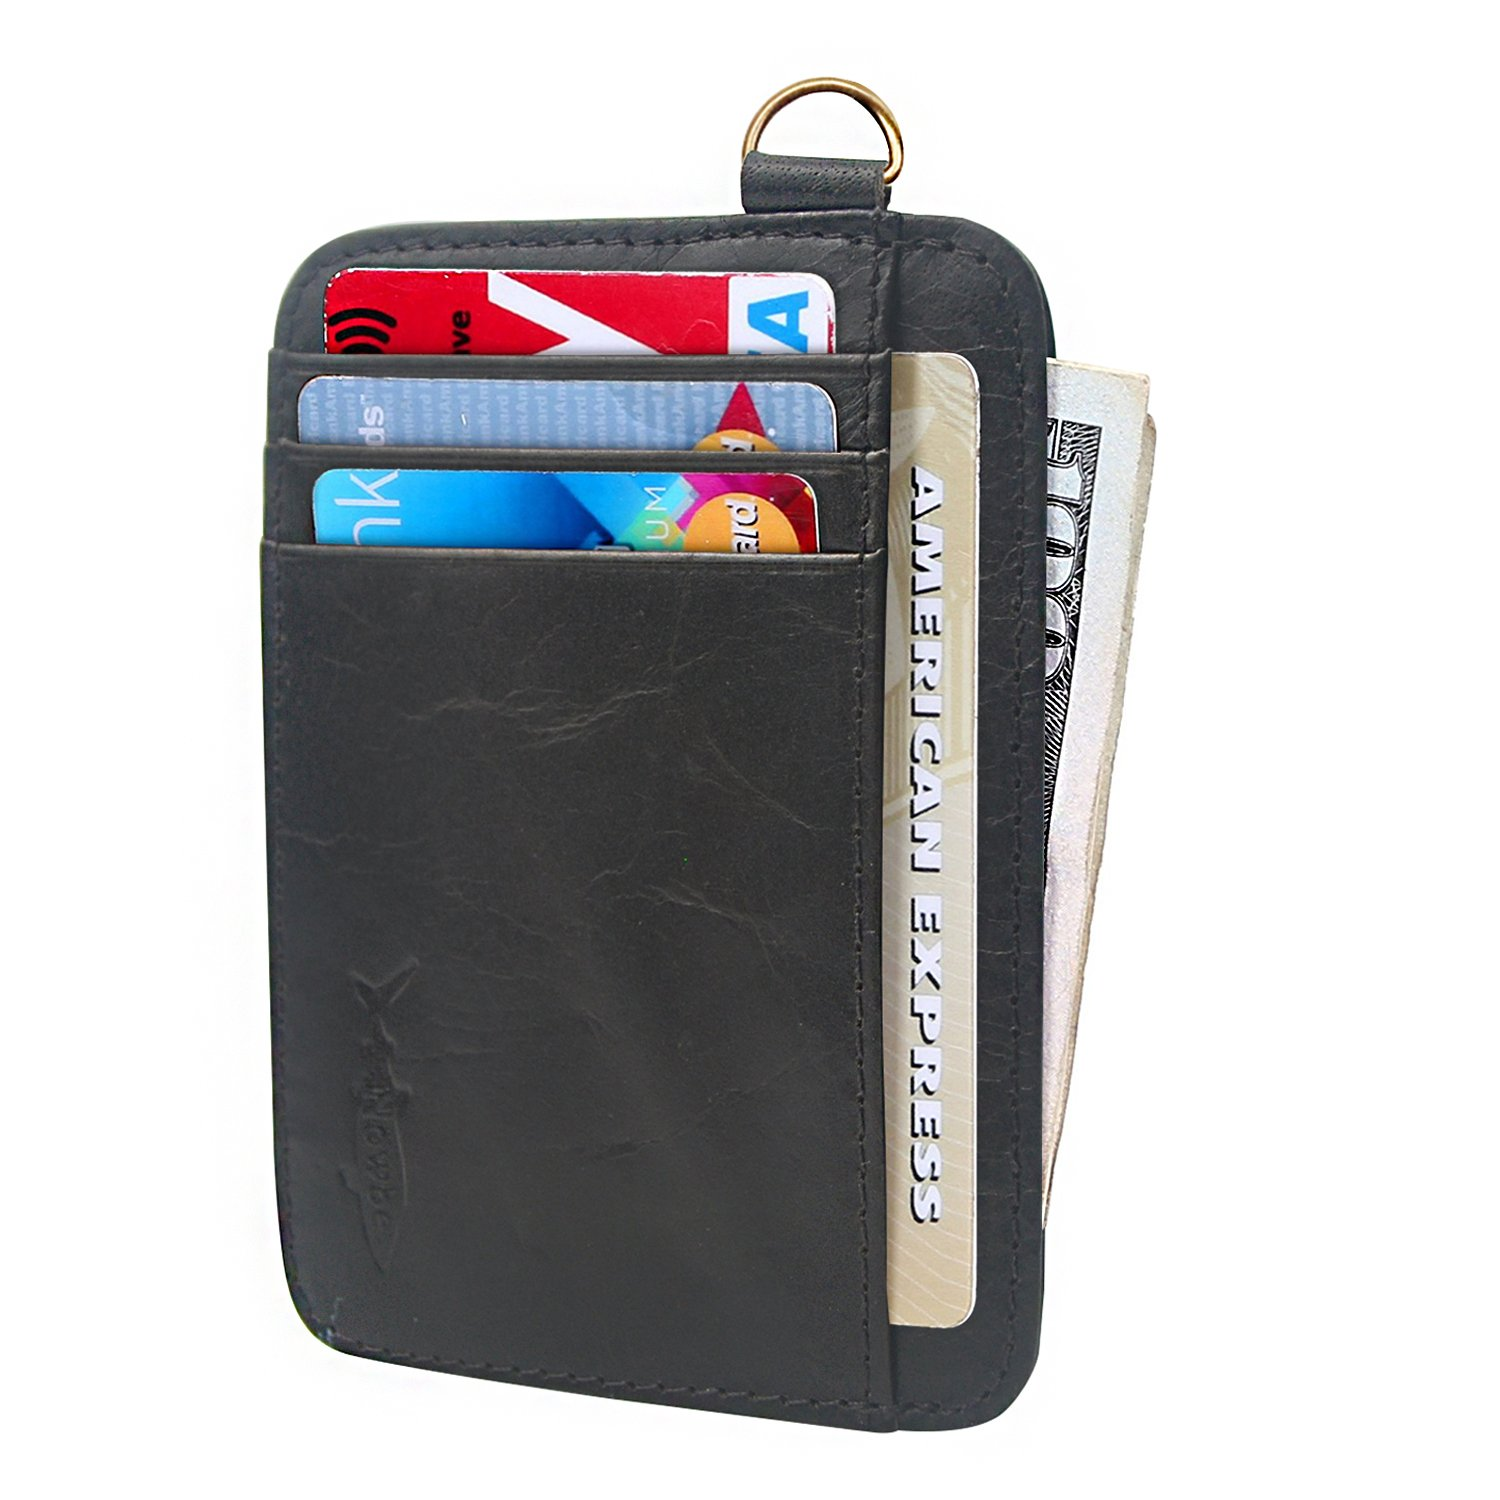 Nowbe Slim Front Pocket Minimalist Inserts Credit Card Mens Wallet Genuine Leather Small Size With Chain